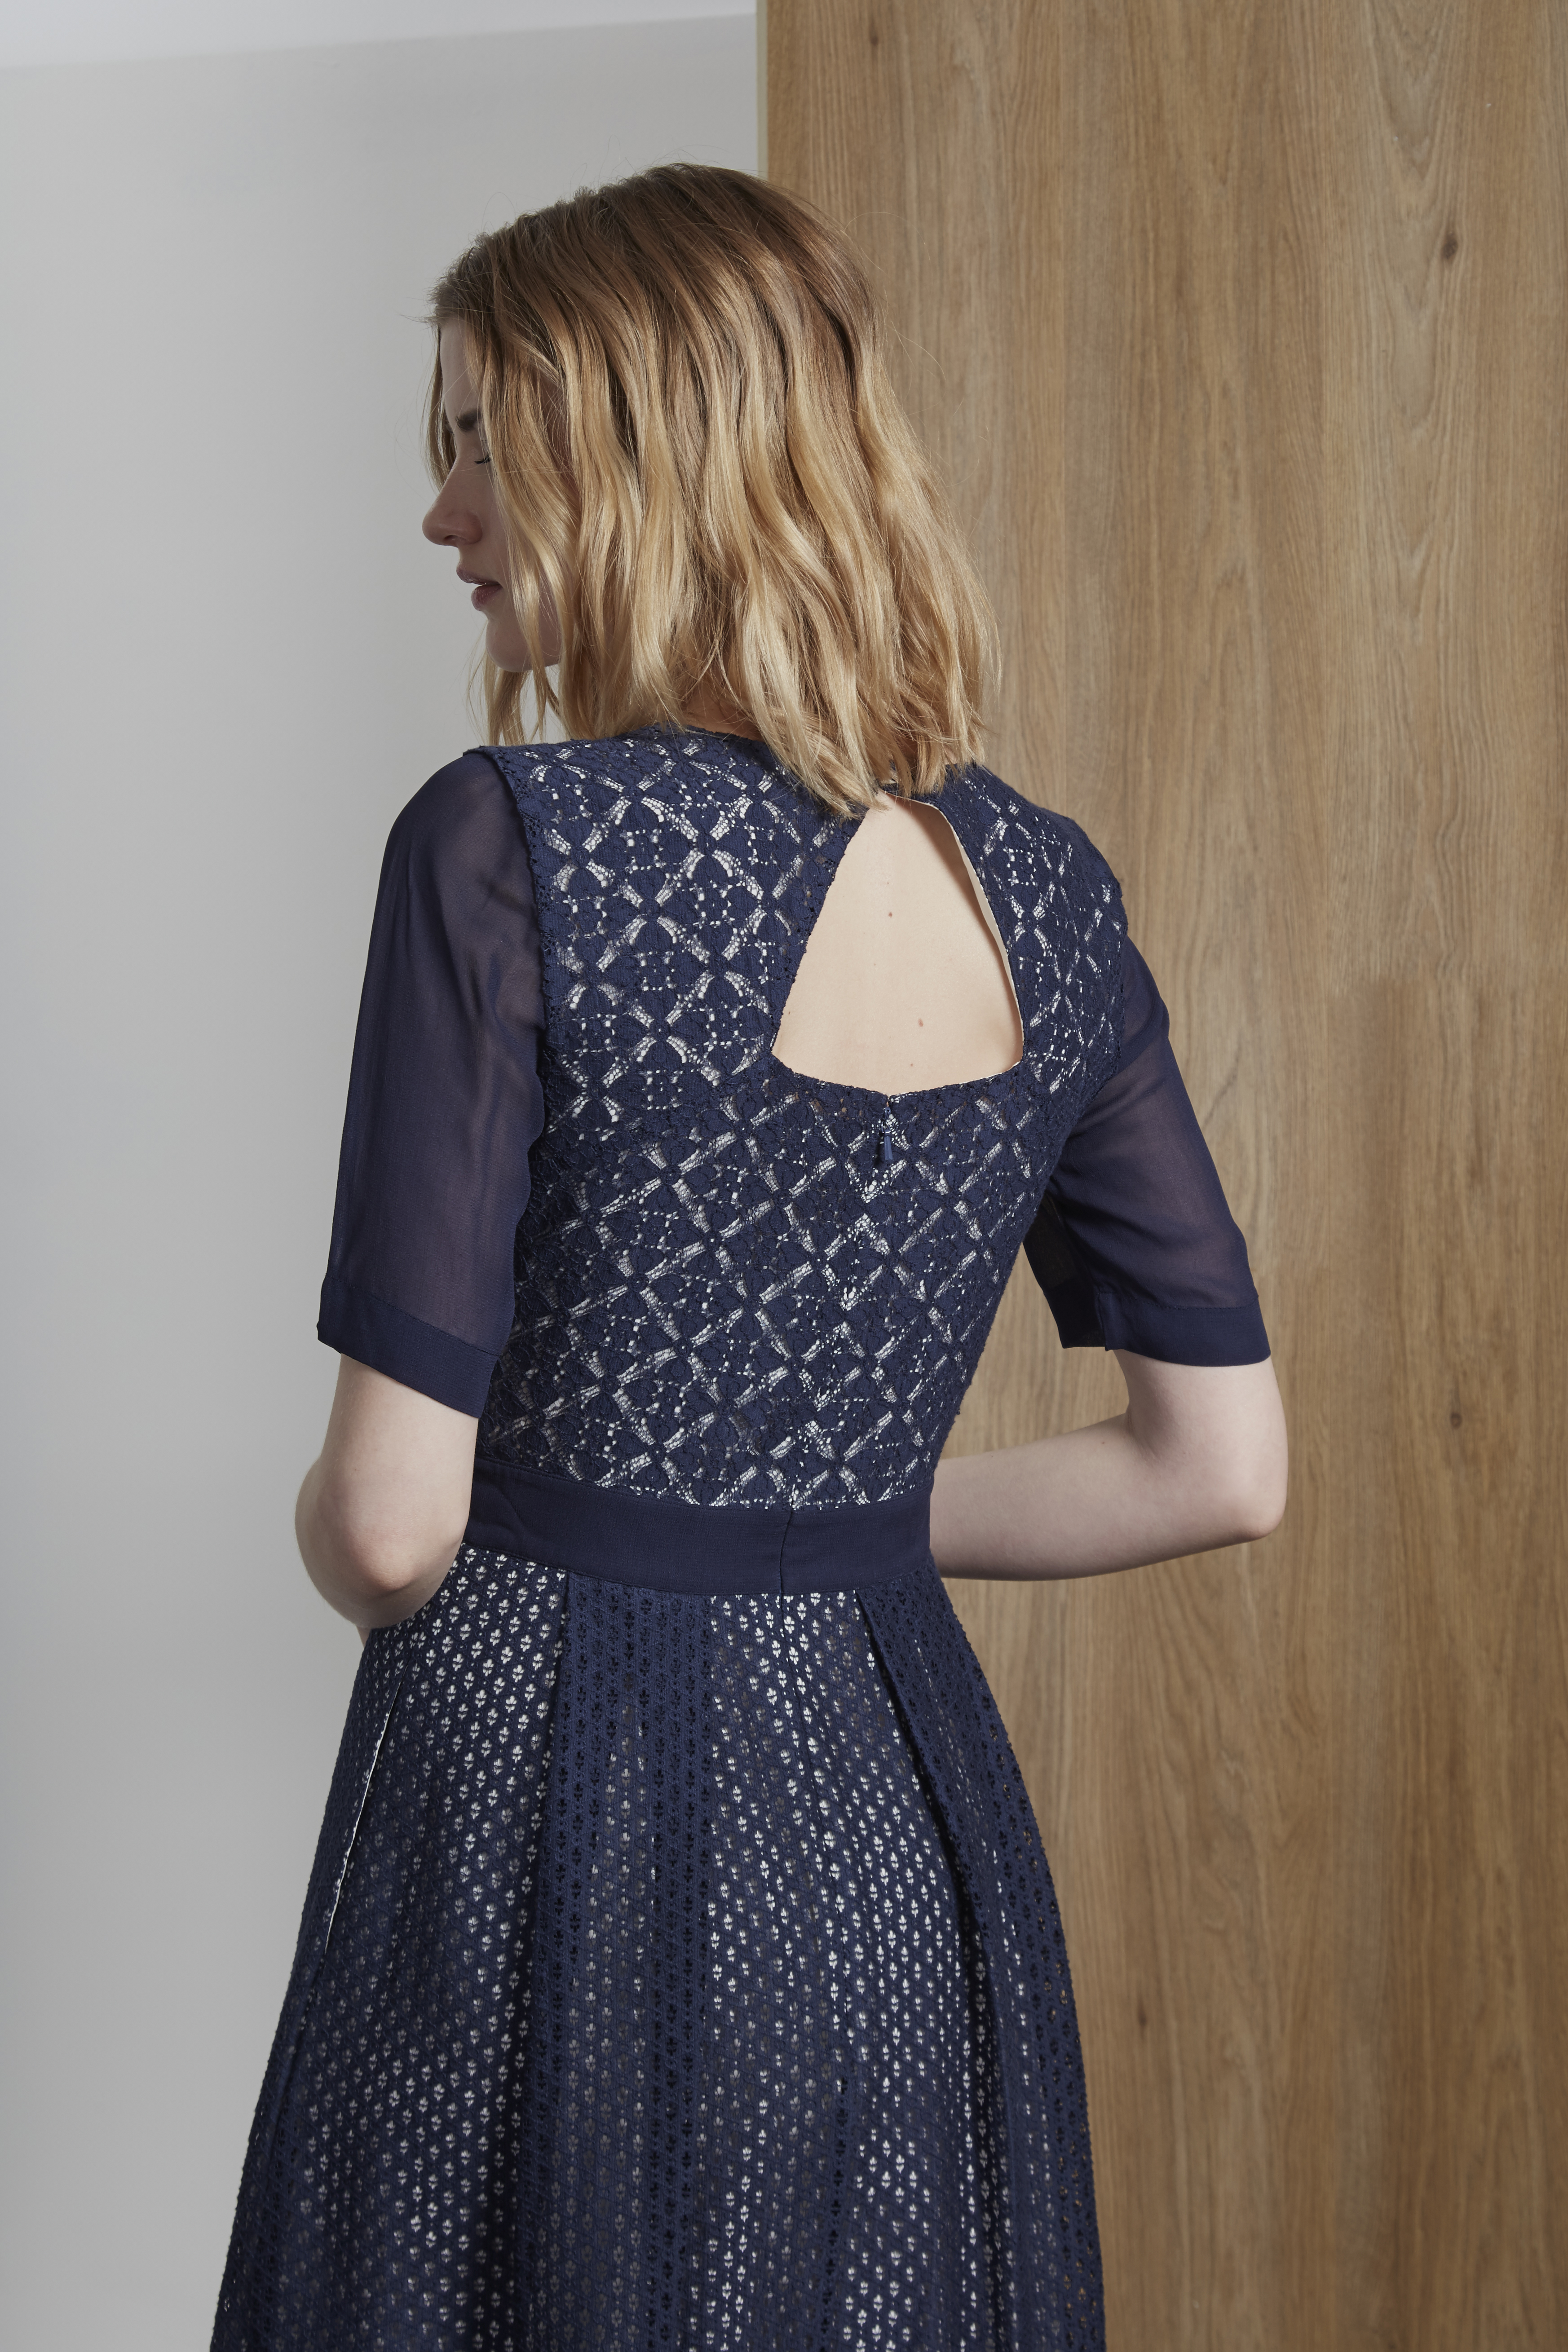 Wedding Guest Outfit Inspiration - Lucia Lace Mix Open Back Dress